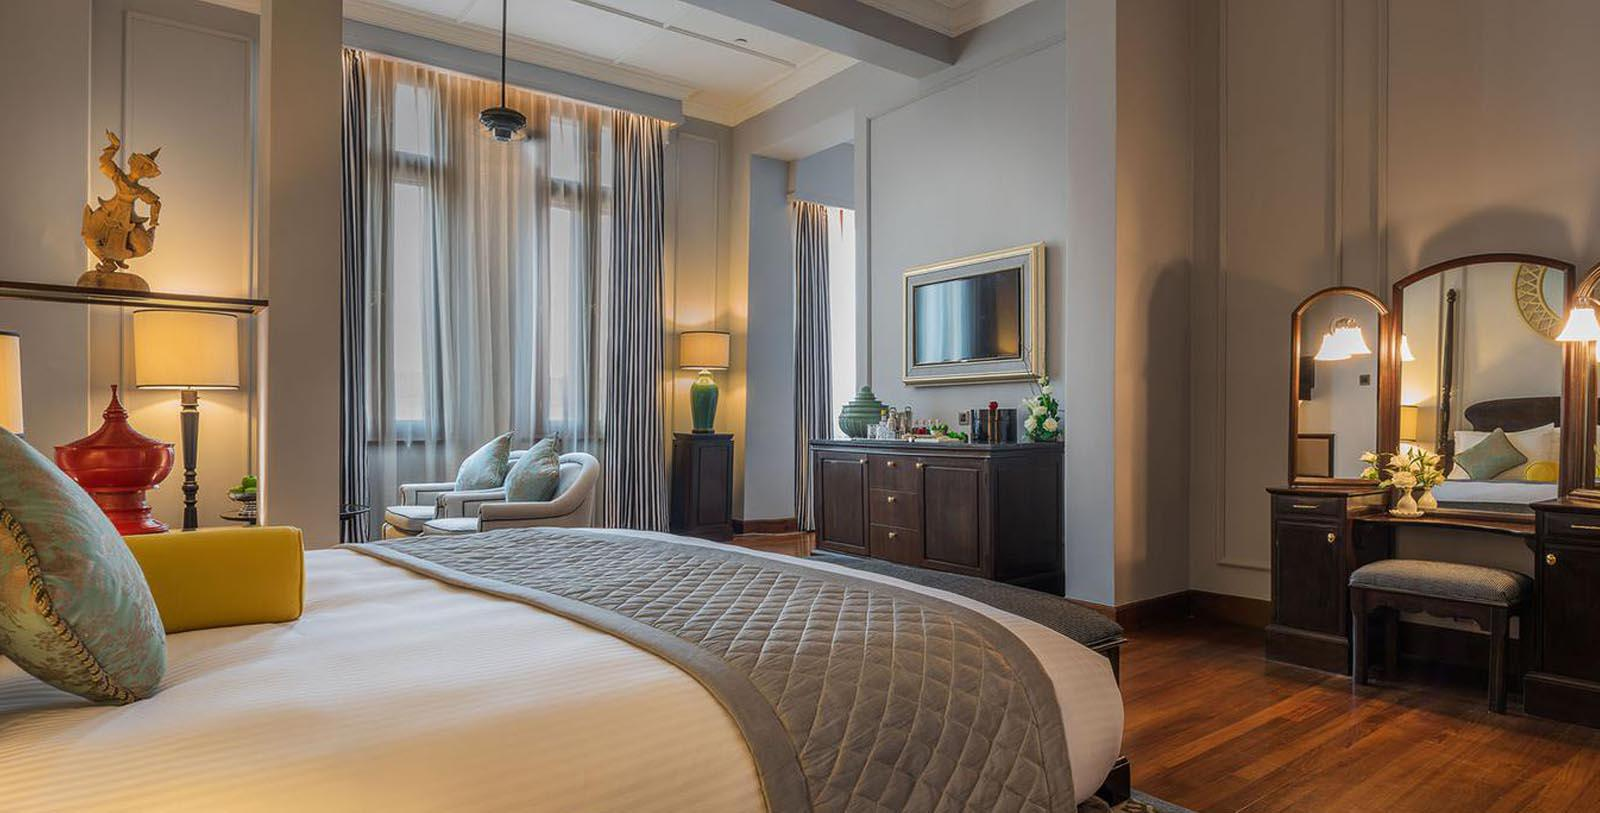 Image of Suite at The Strand Hotel, 1901, Member of Historic Hotels Worldwide, in Yangon, Myanmar, AccommodationsImage of Guestroom at The Strand Hotel, 1901, Member of Historic Hotels Worldwide, in Yangon, Myanmar, Accommodations